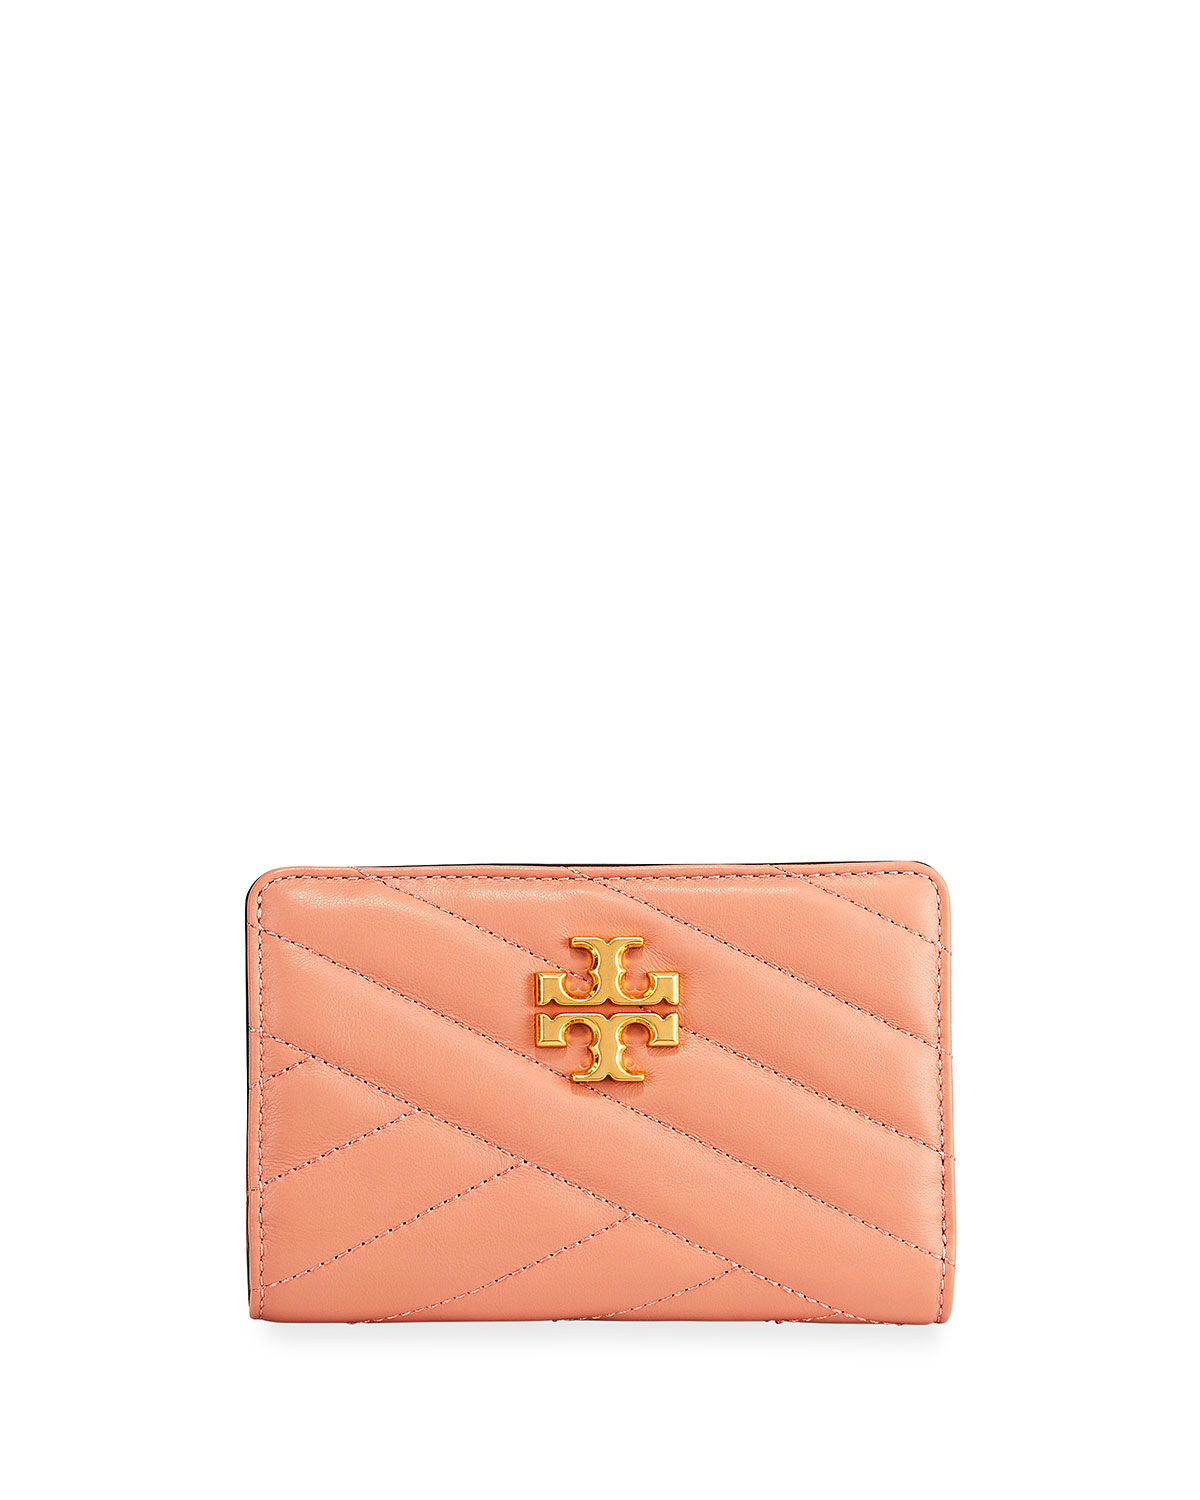 Kira Medium Slim Quilted Leather Wallet by Tory Burch